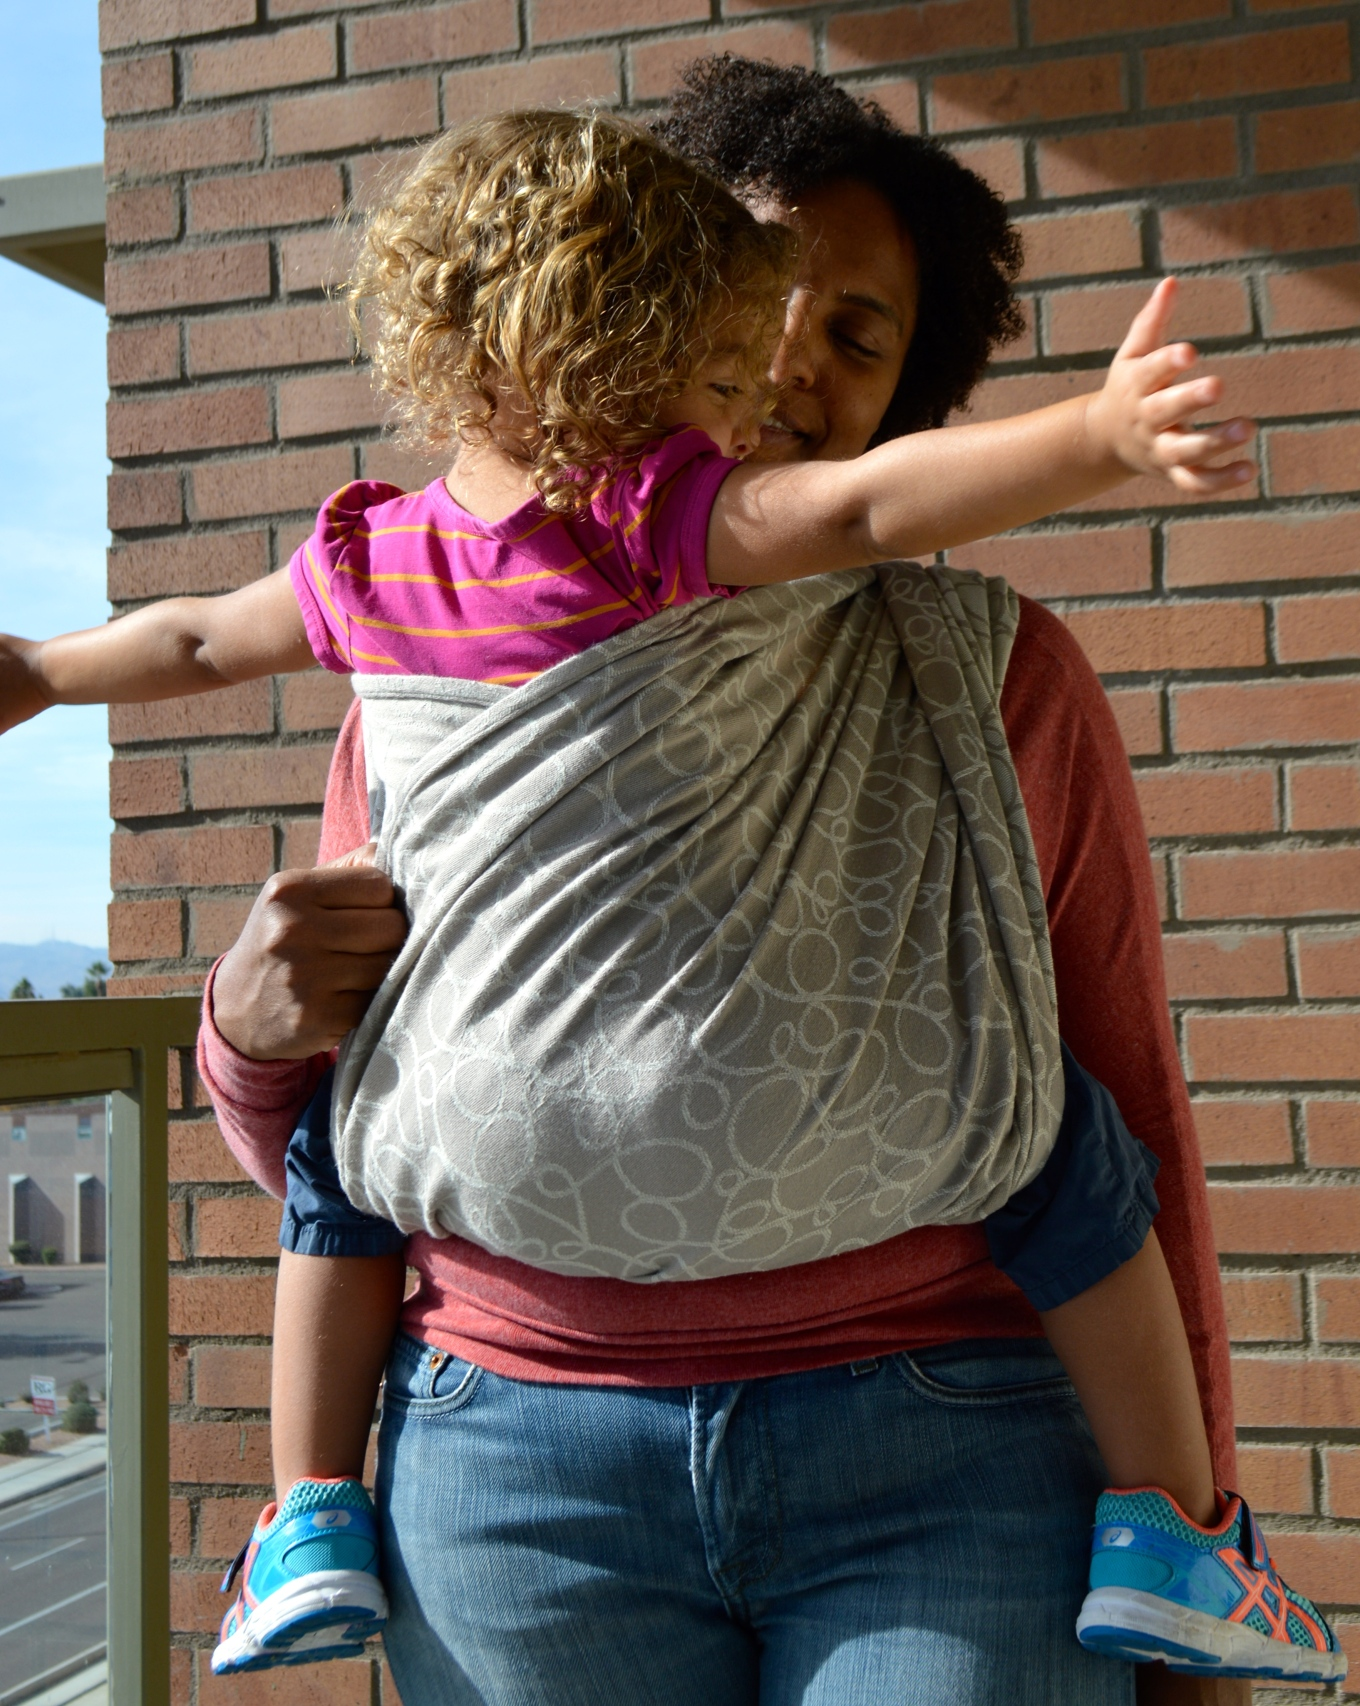 Medium Brown Momma wears light brown blond haired toddler with arms outstretched for a hug in a dark tan colored wrap with light tan colored swirls. The wrap crosses behind baby's back just under her arms.